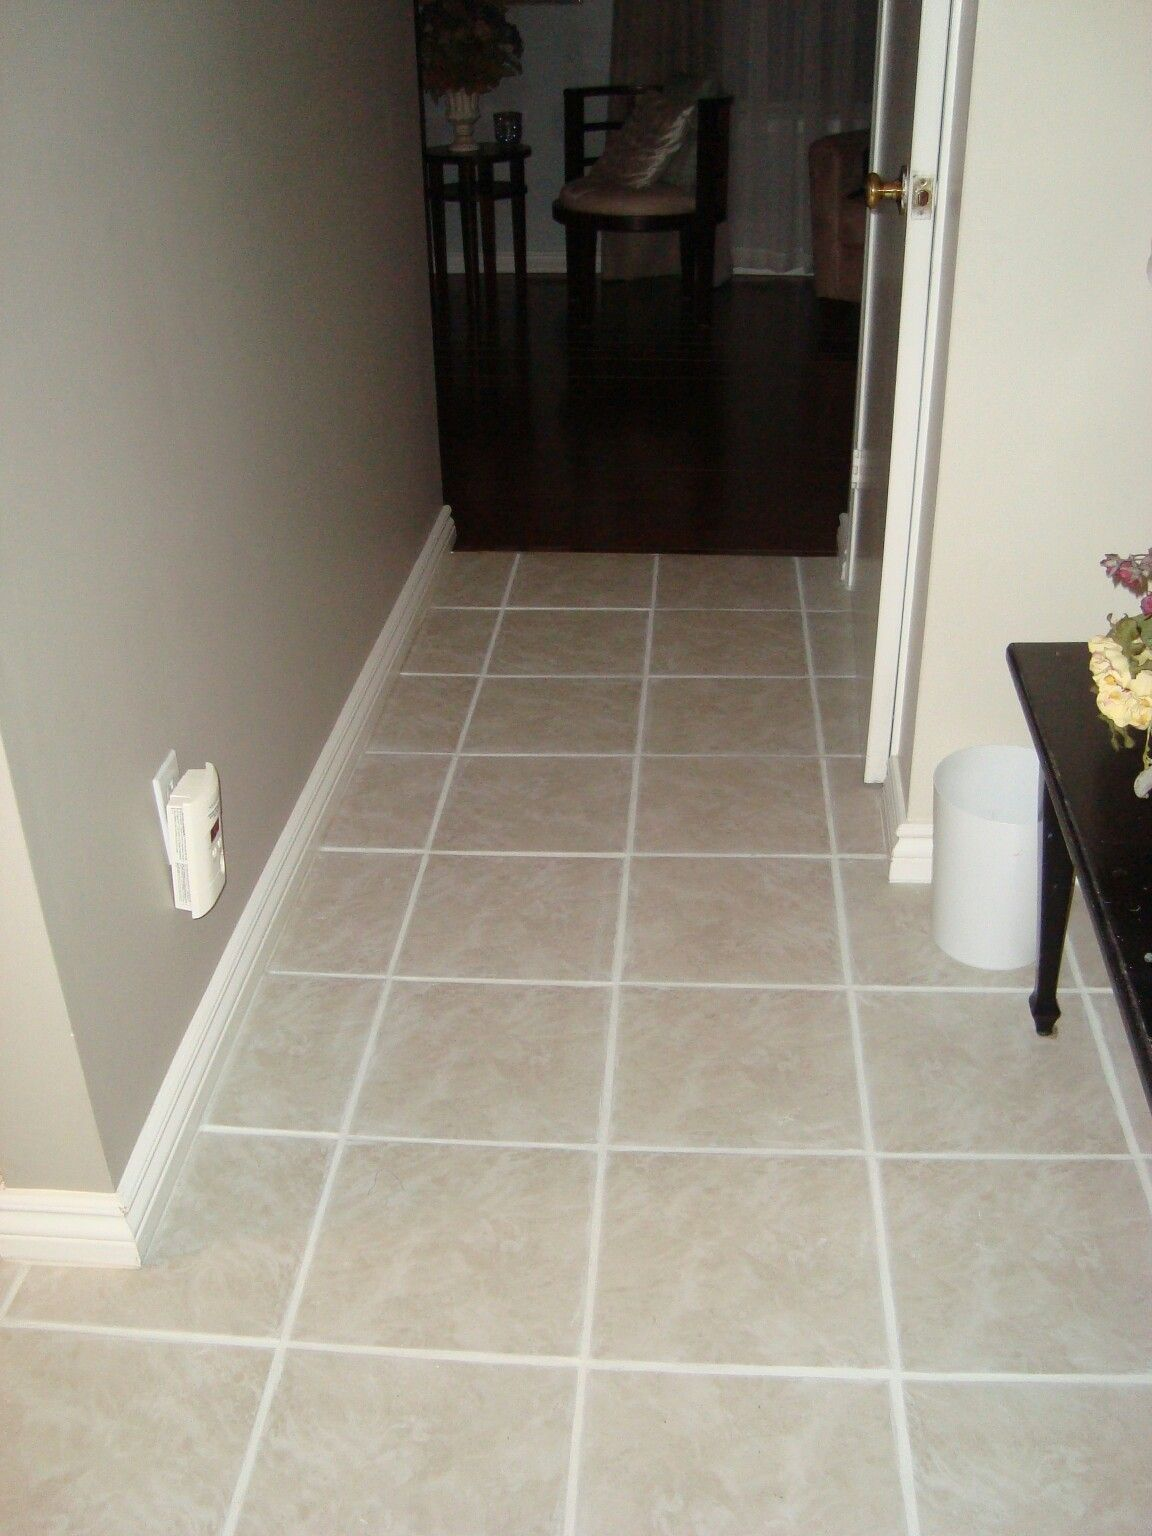 Change colour of grout with polyblend from home depot